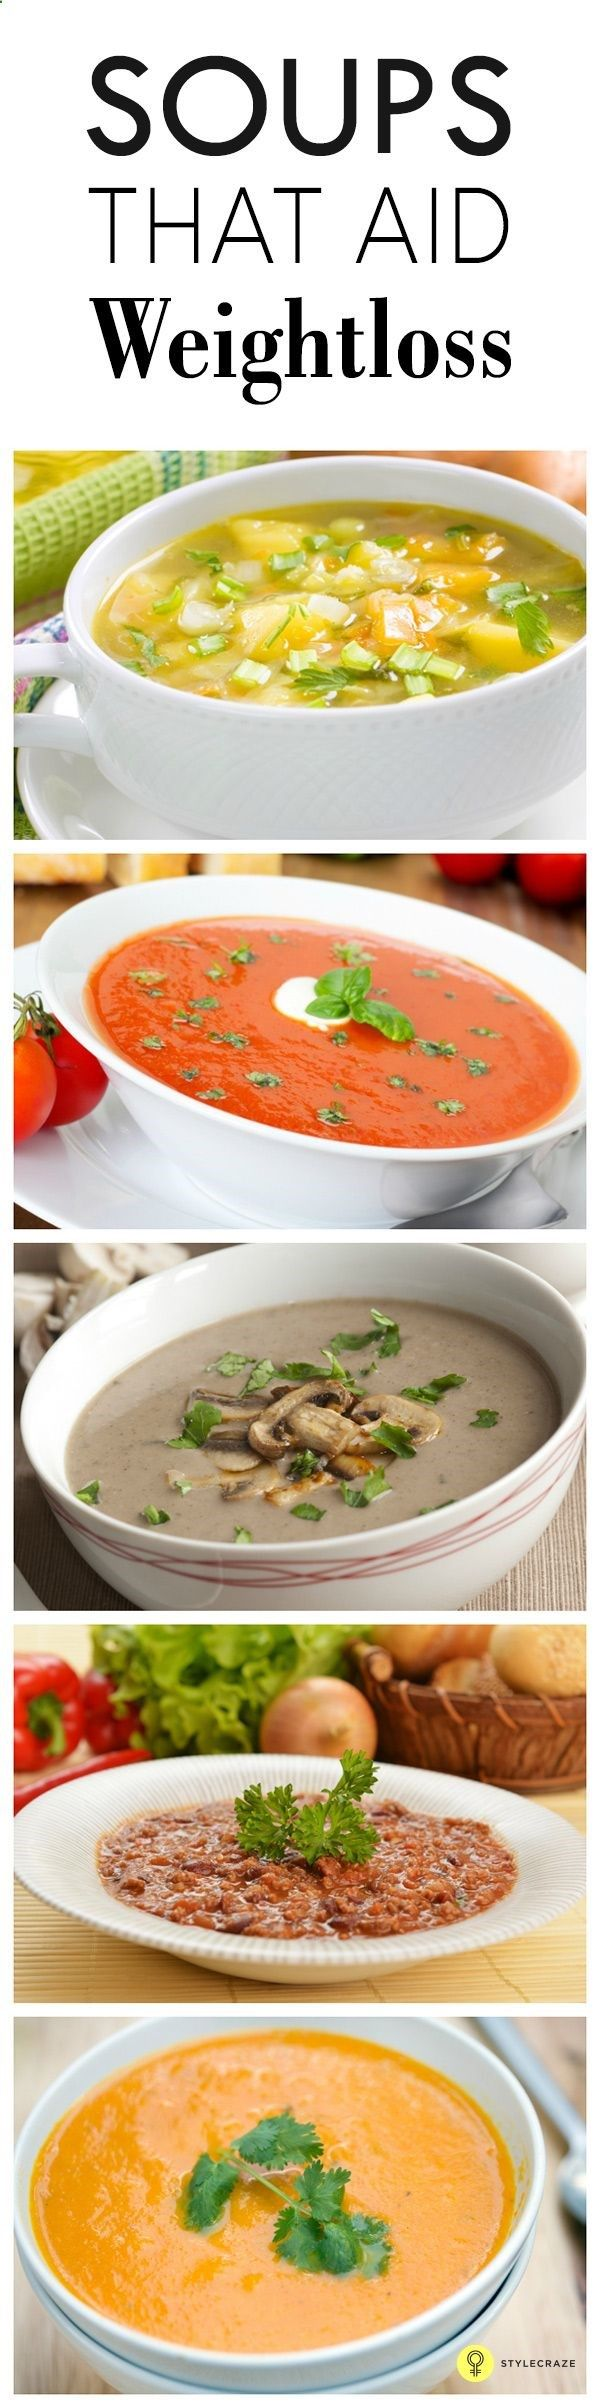 A lot of people toda A lot of people today focus on weight loss. One of the best ways is a liquid diet. Here are some soups for weight loss that will help you those few ... www.pinterest.com...